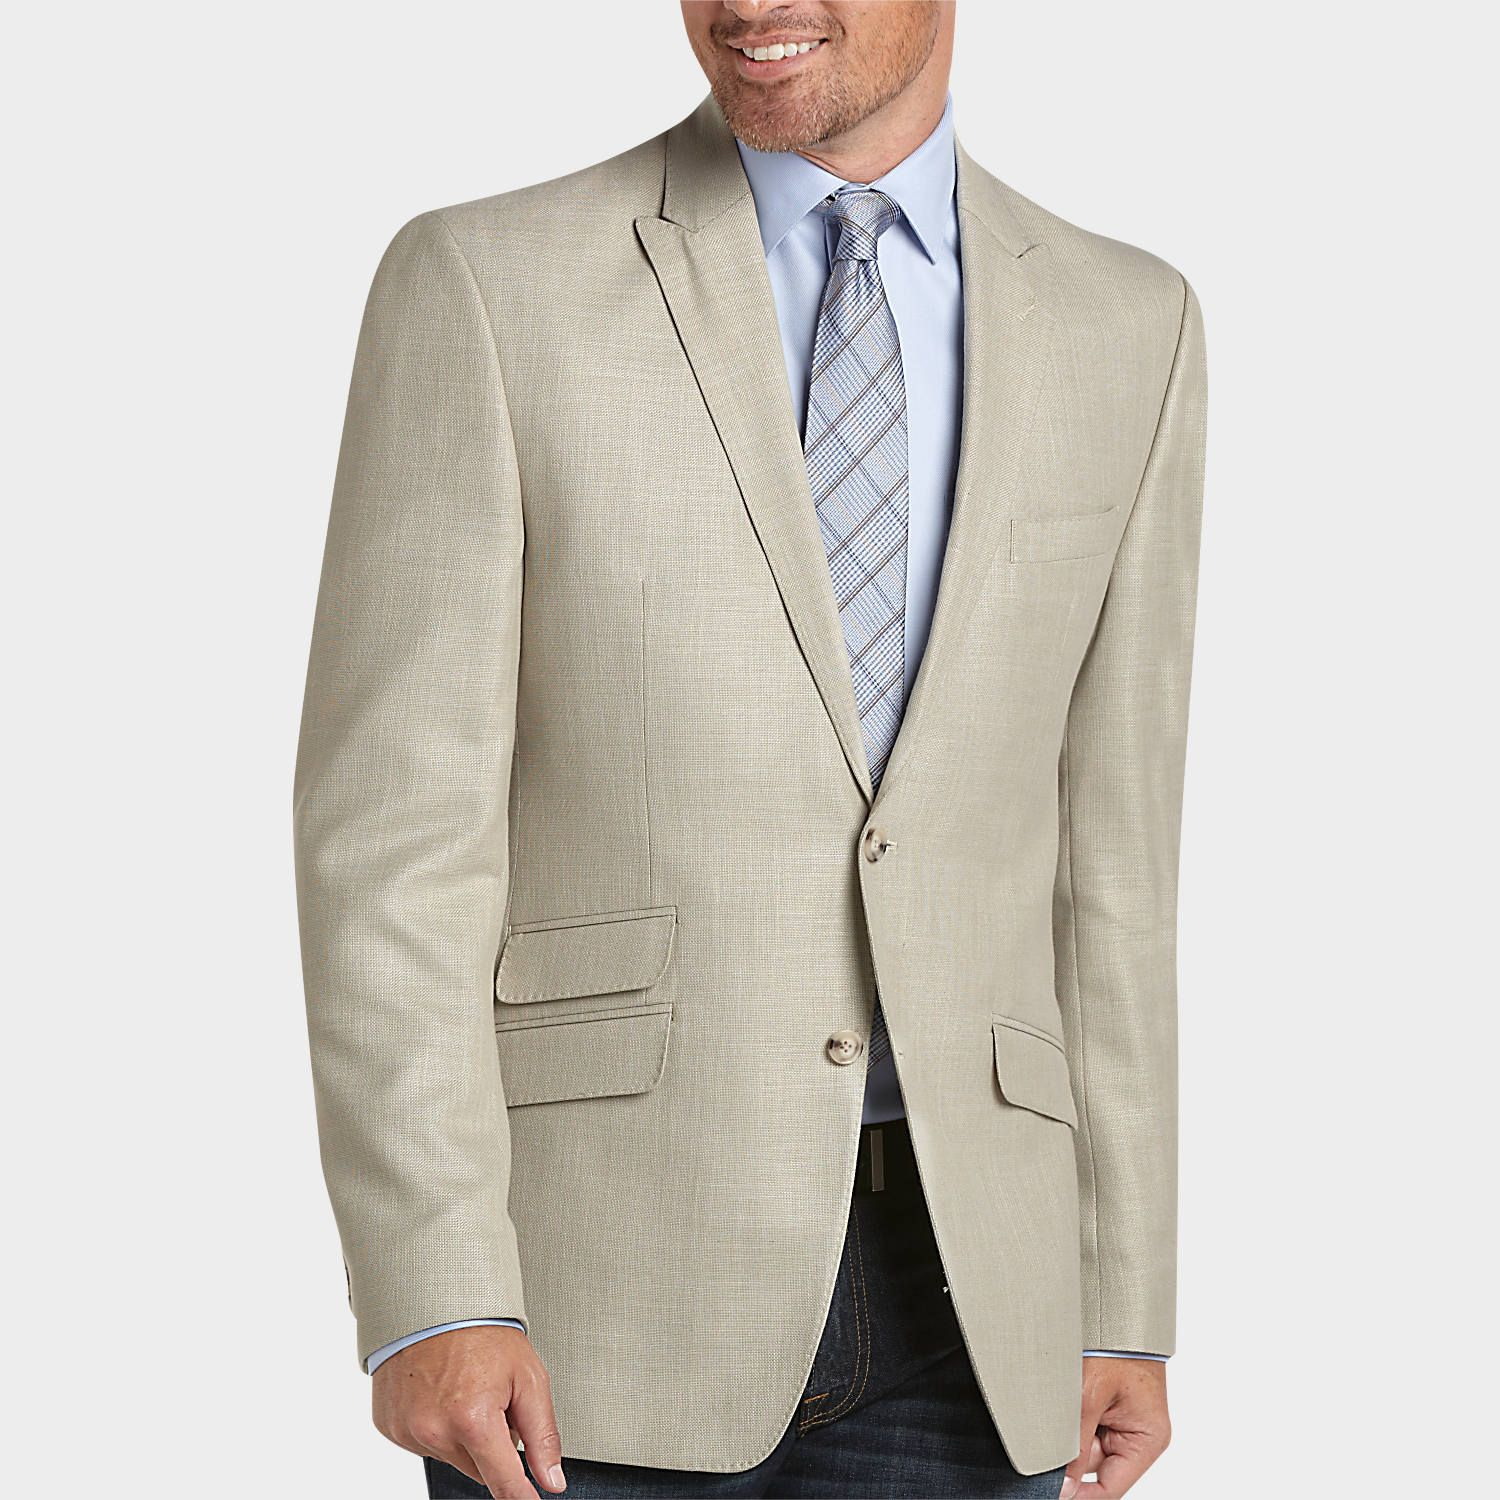 Perry Ellis Portfolio Tan Slim Fit Sport Coat - Slim Fit (Extra ...